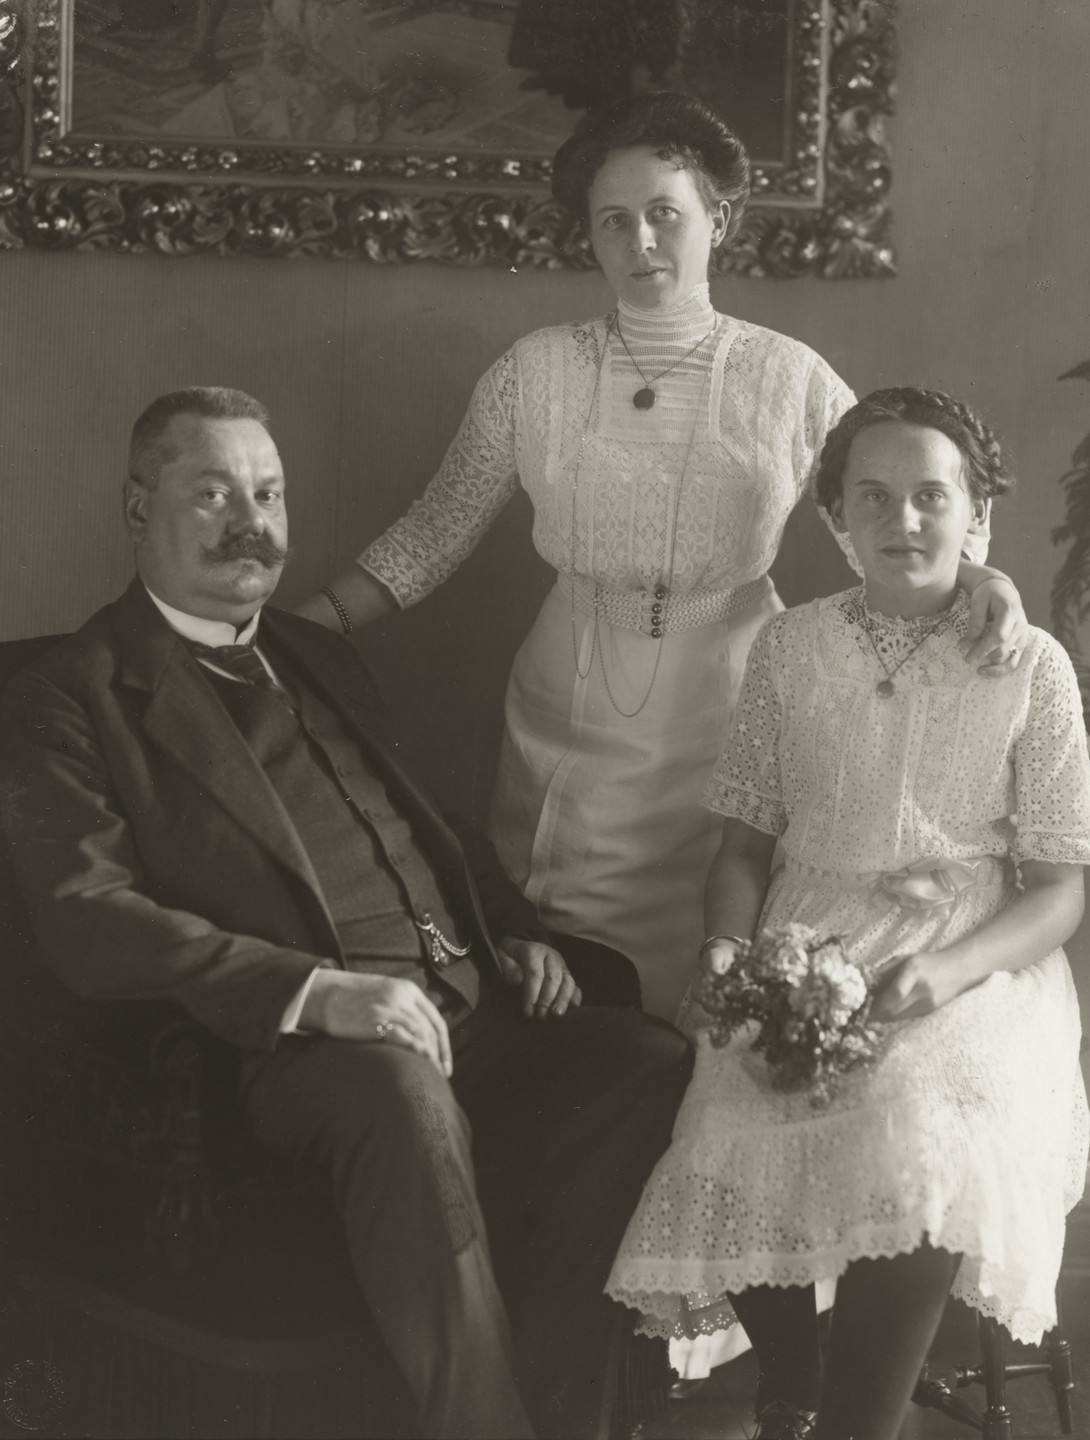 August Sander. Wine Merchant's Family. 1913